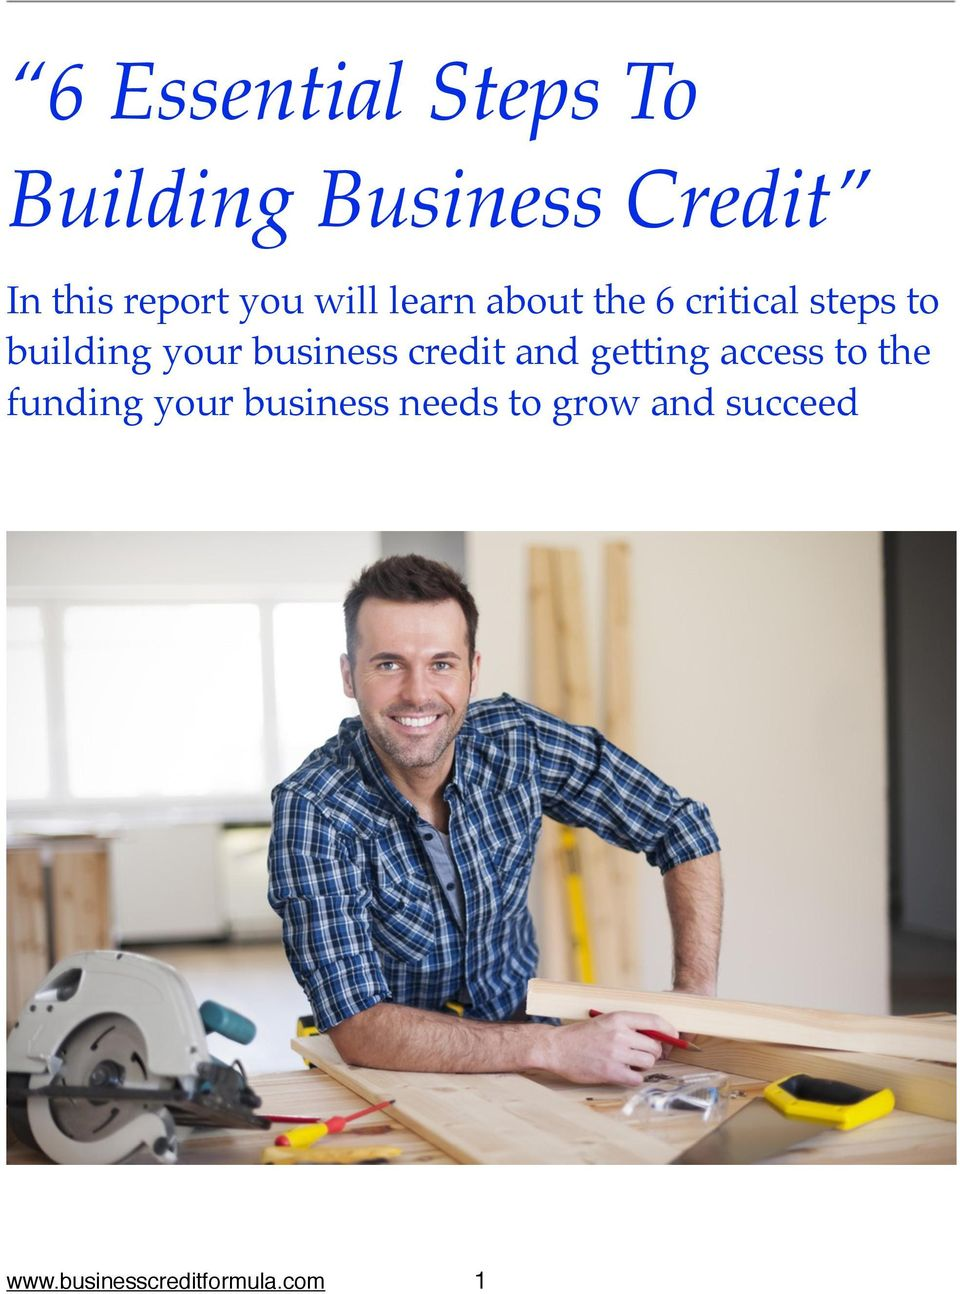 to building your business credit and getting access to